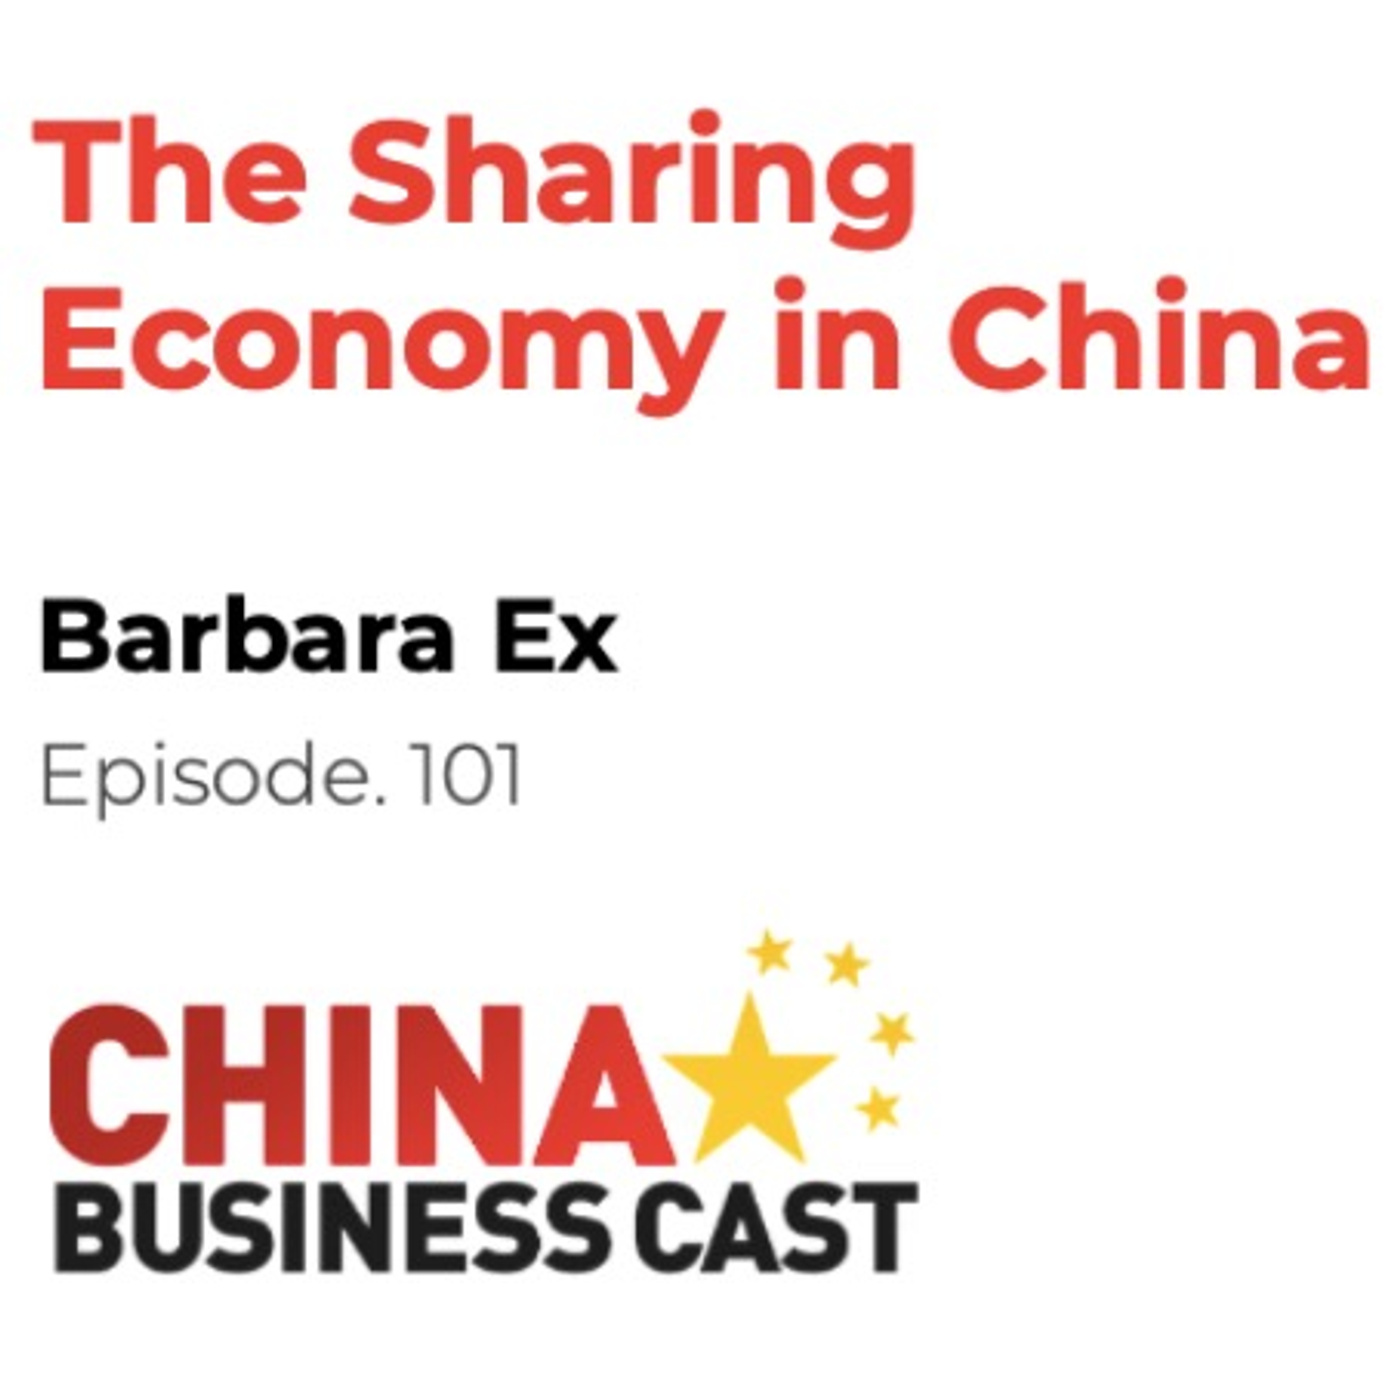 Ep. 101: The Sharing Economy in China with Barbara Ex